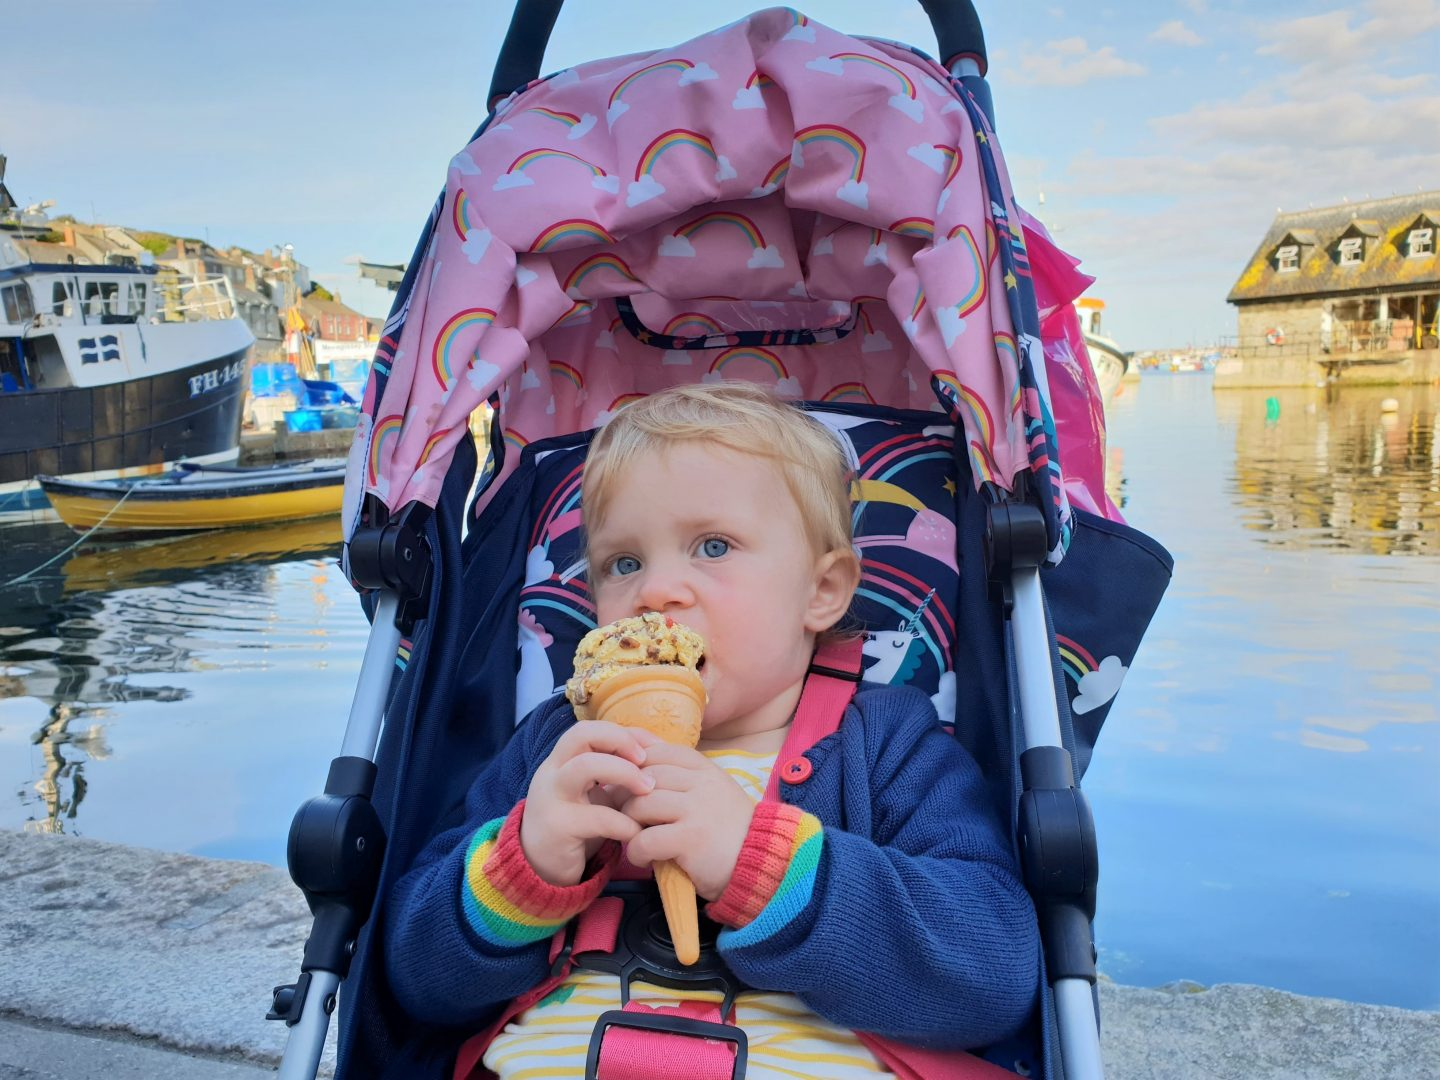 Toddler eating ice cream in Mevagissey